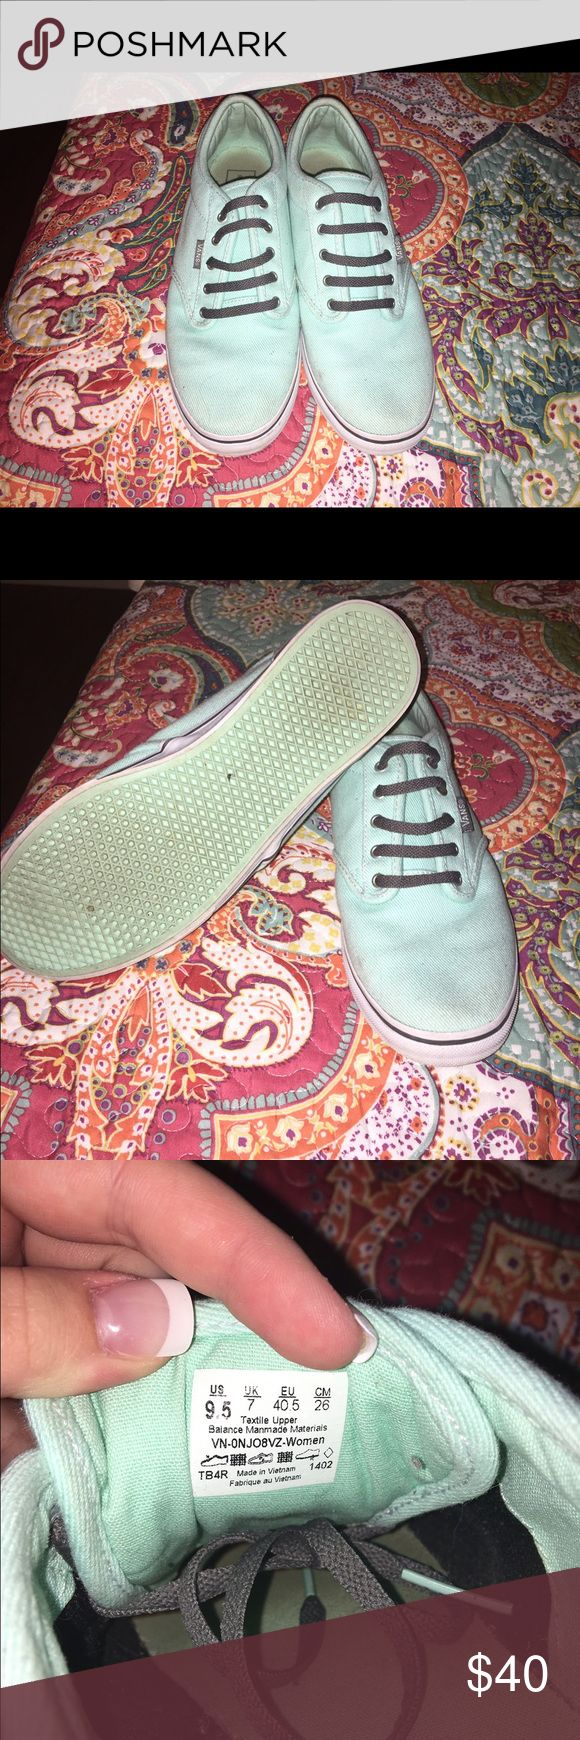 Mint Vans Vans, worn a few times. They are the wrong size for me... Very good condition!! Vans Shoes